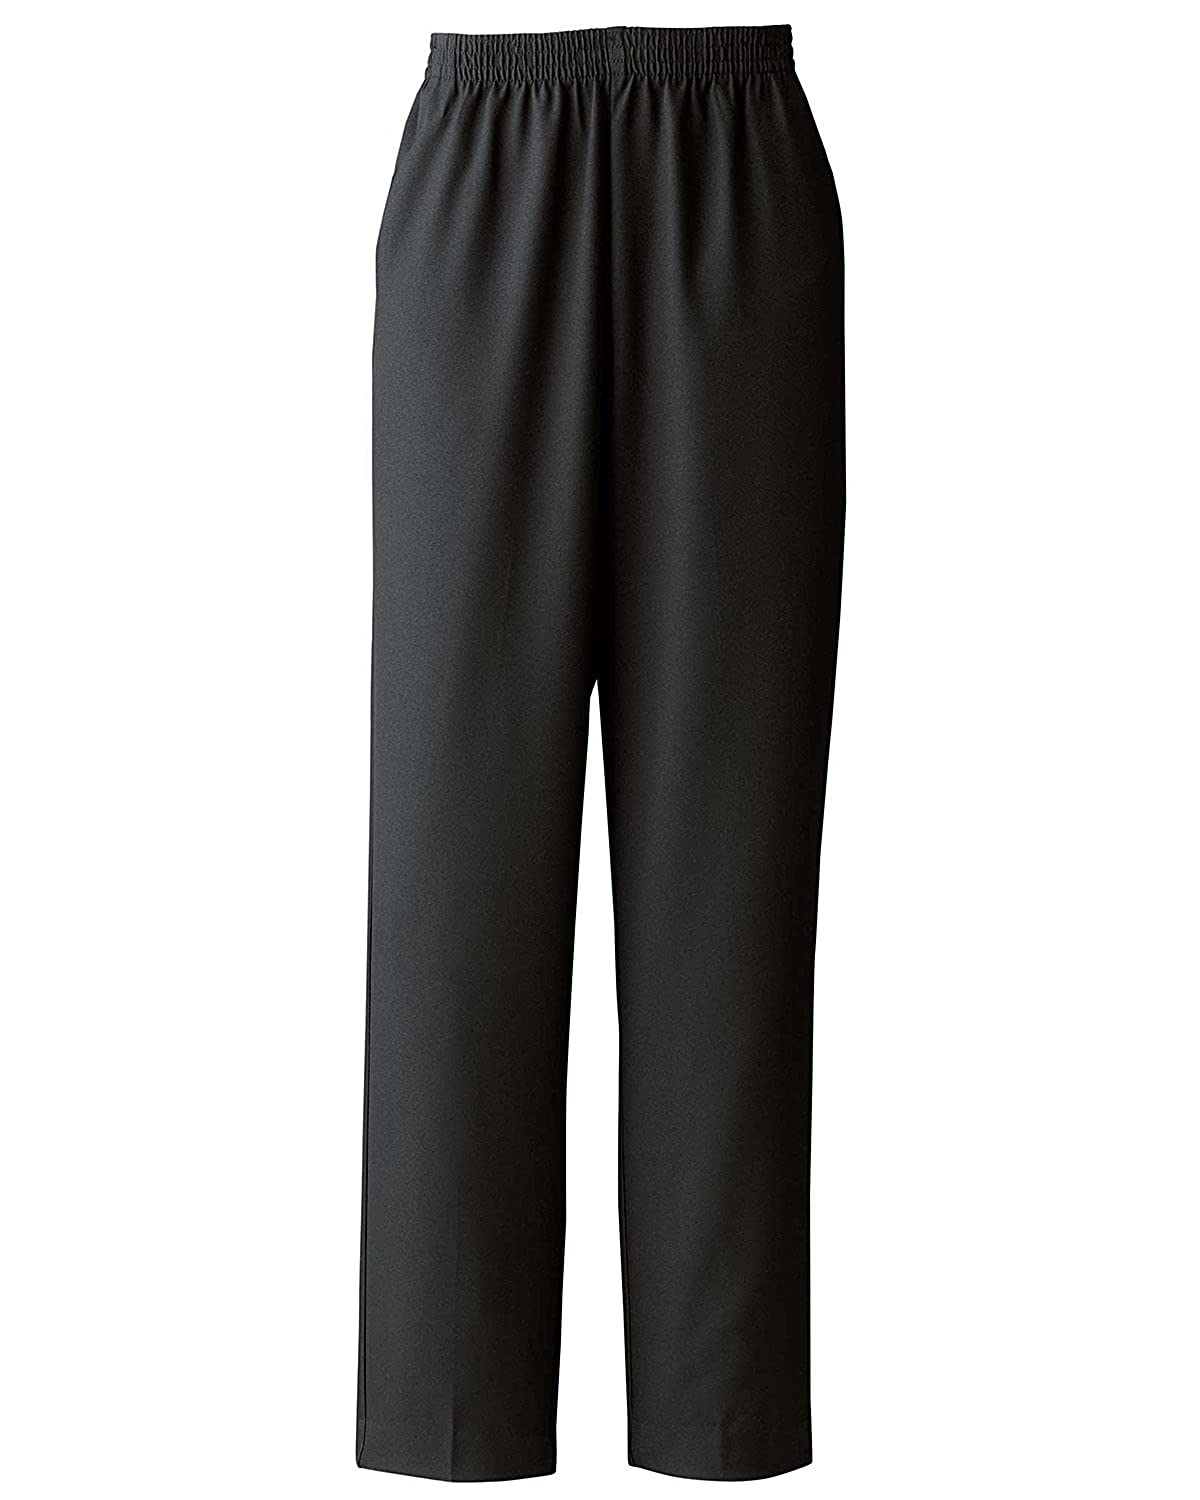 Donnkenny Women's Plus Size Pull-On Pants